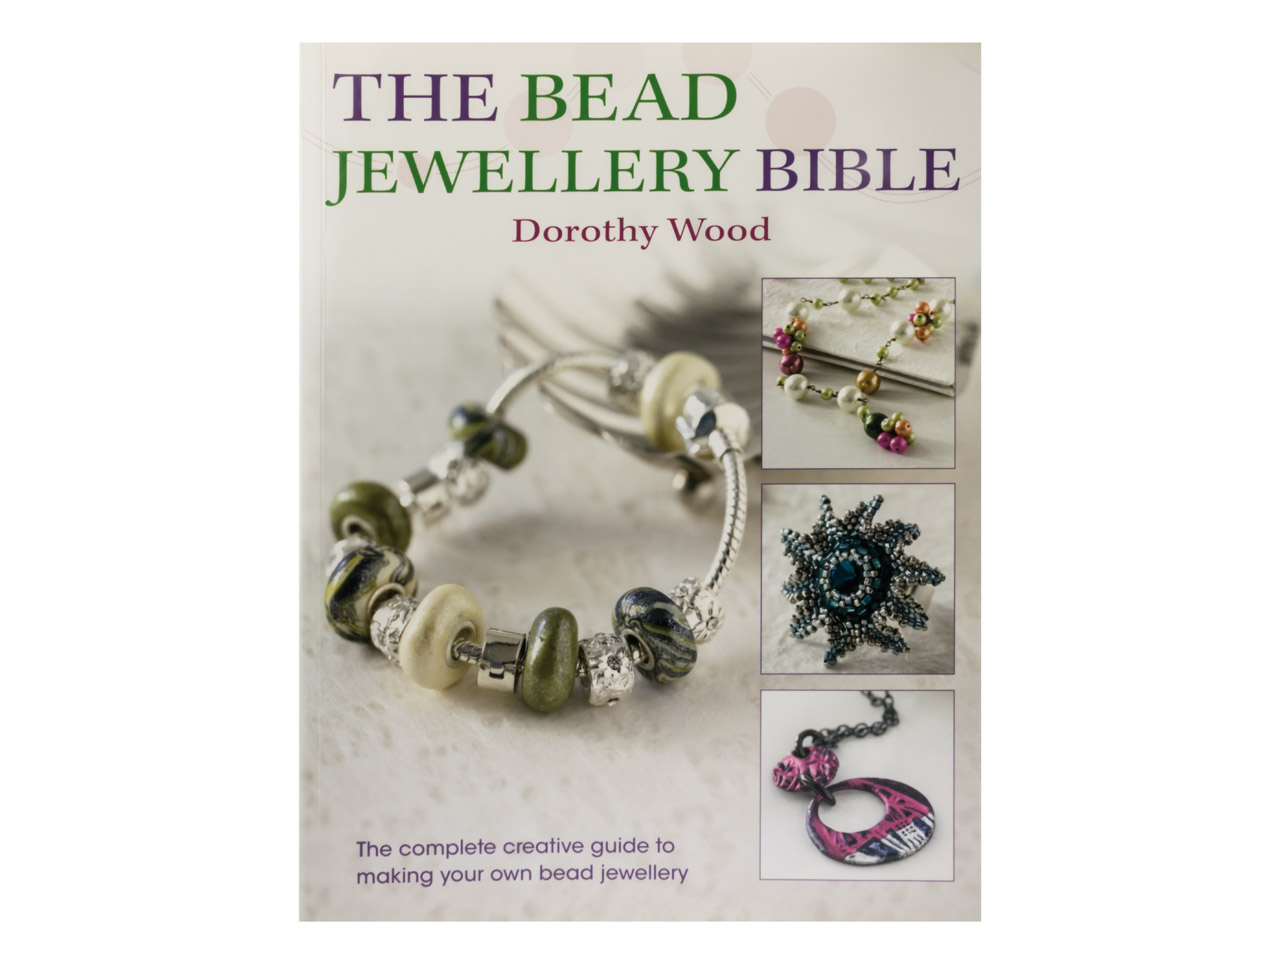 The Bead Jewellery Bible By Dorothy Wood